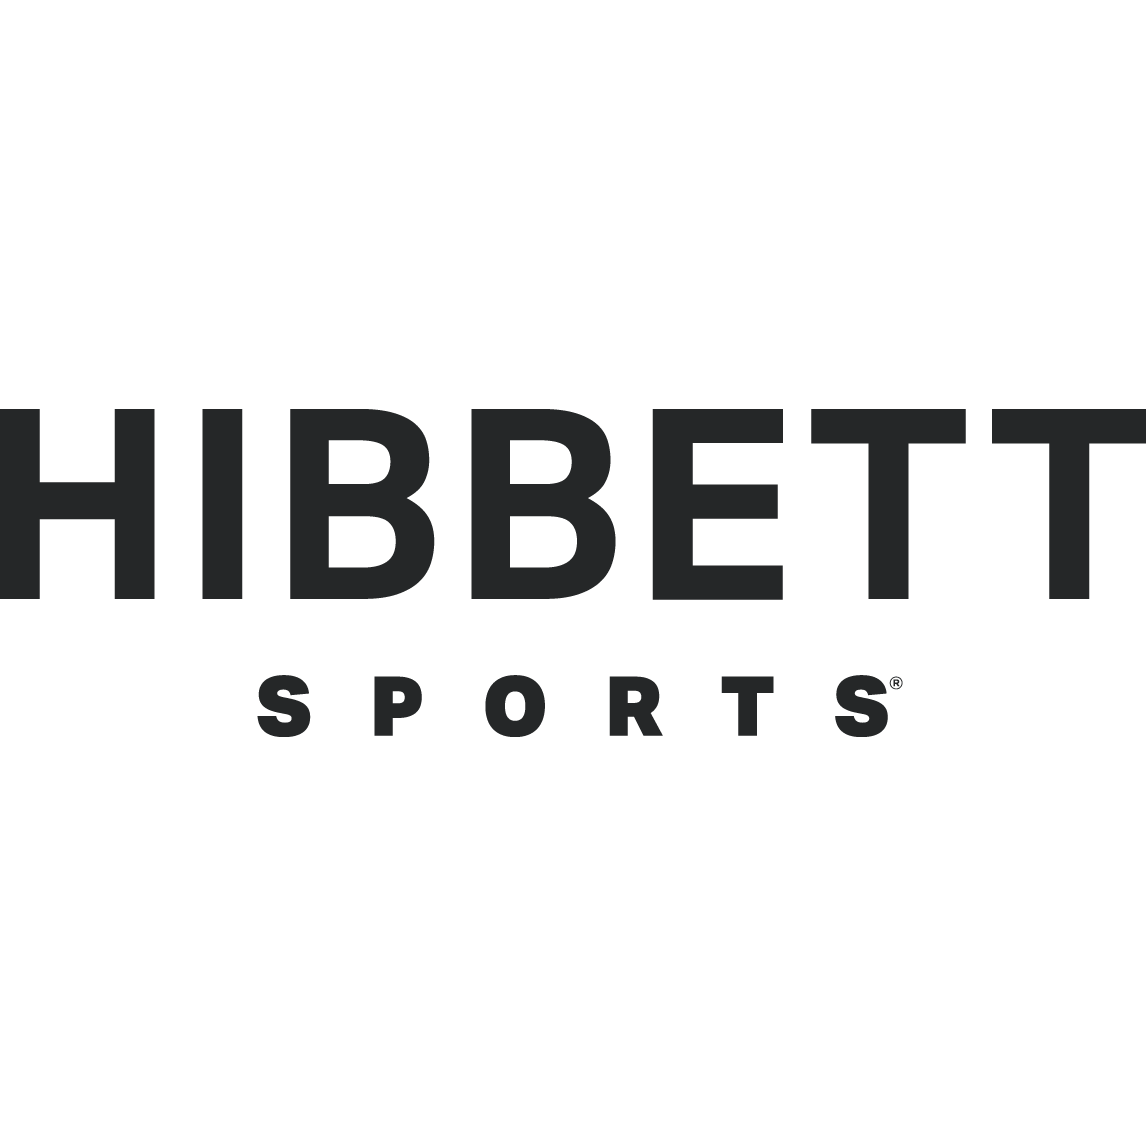 Hibbett Sports - Kirksville, MO 63501 - (660)665-0099 | ShowMeLocal.com